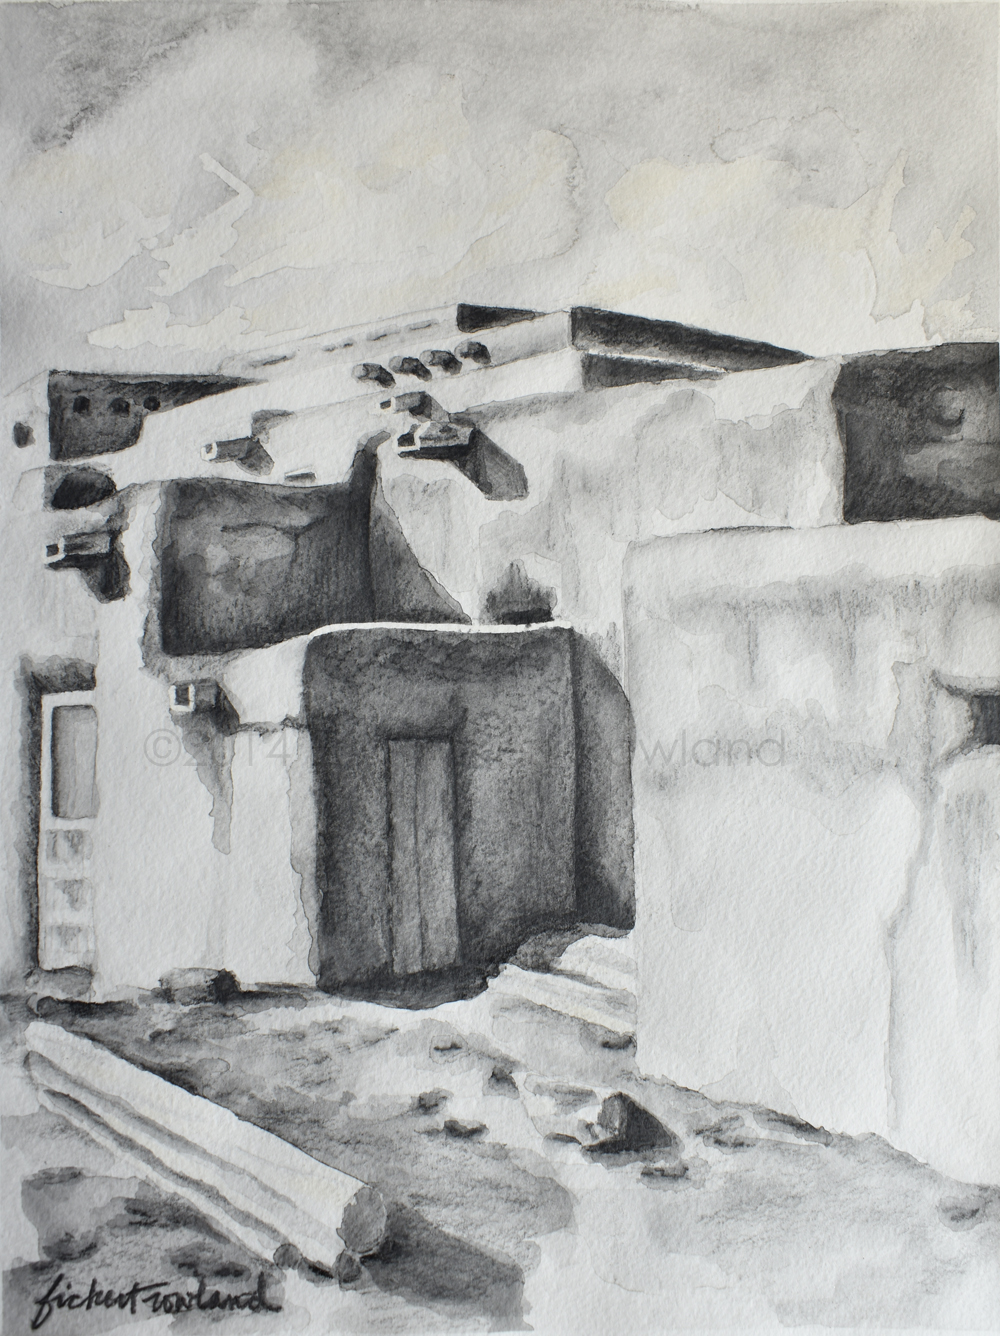 """Hlauuma, Taos Pueblo (North House)""  8 1/2 in x 11 1/2 in  Matted to 11 in x 14 in"